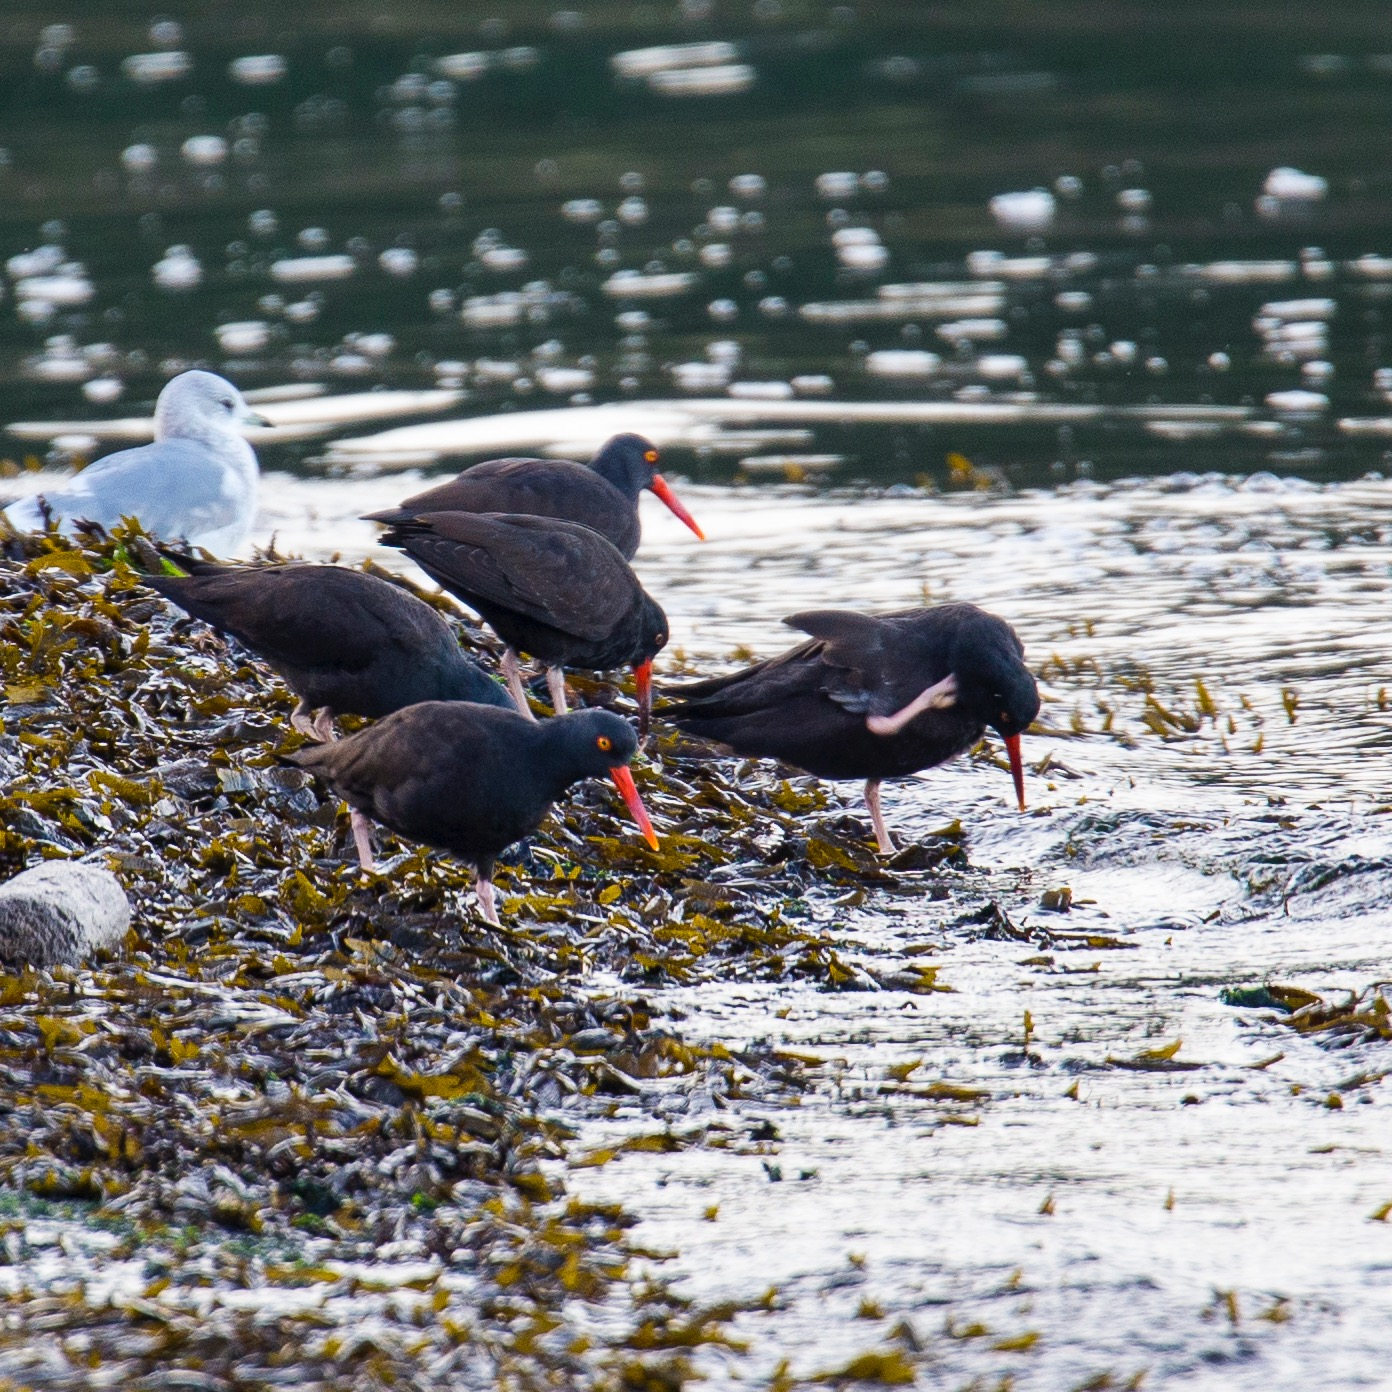 A small flock of oyster catchers flew in while we were on the beach.